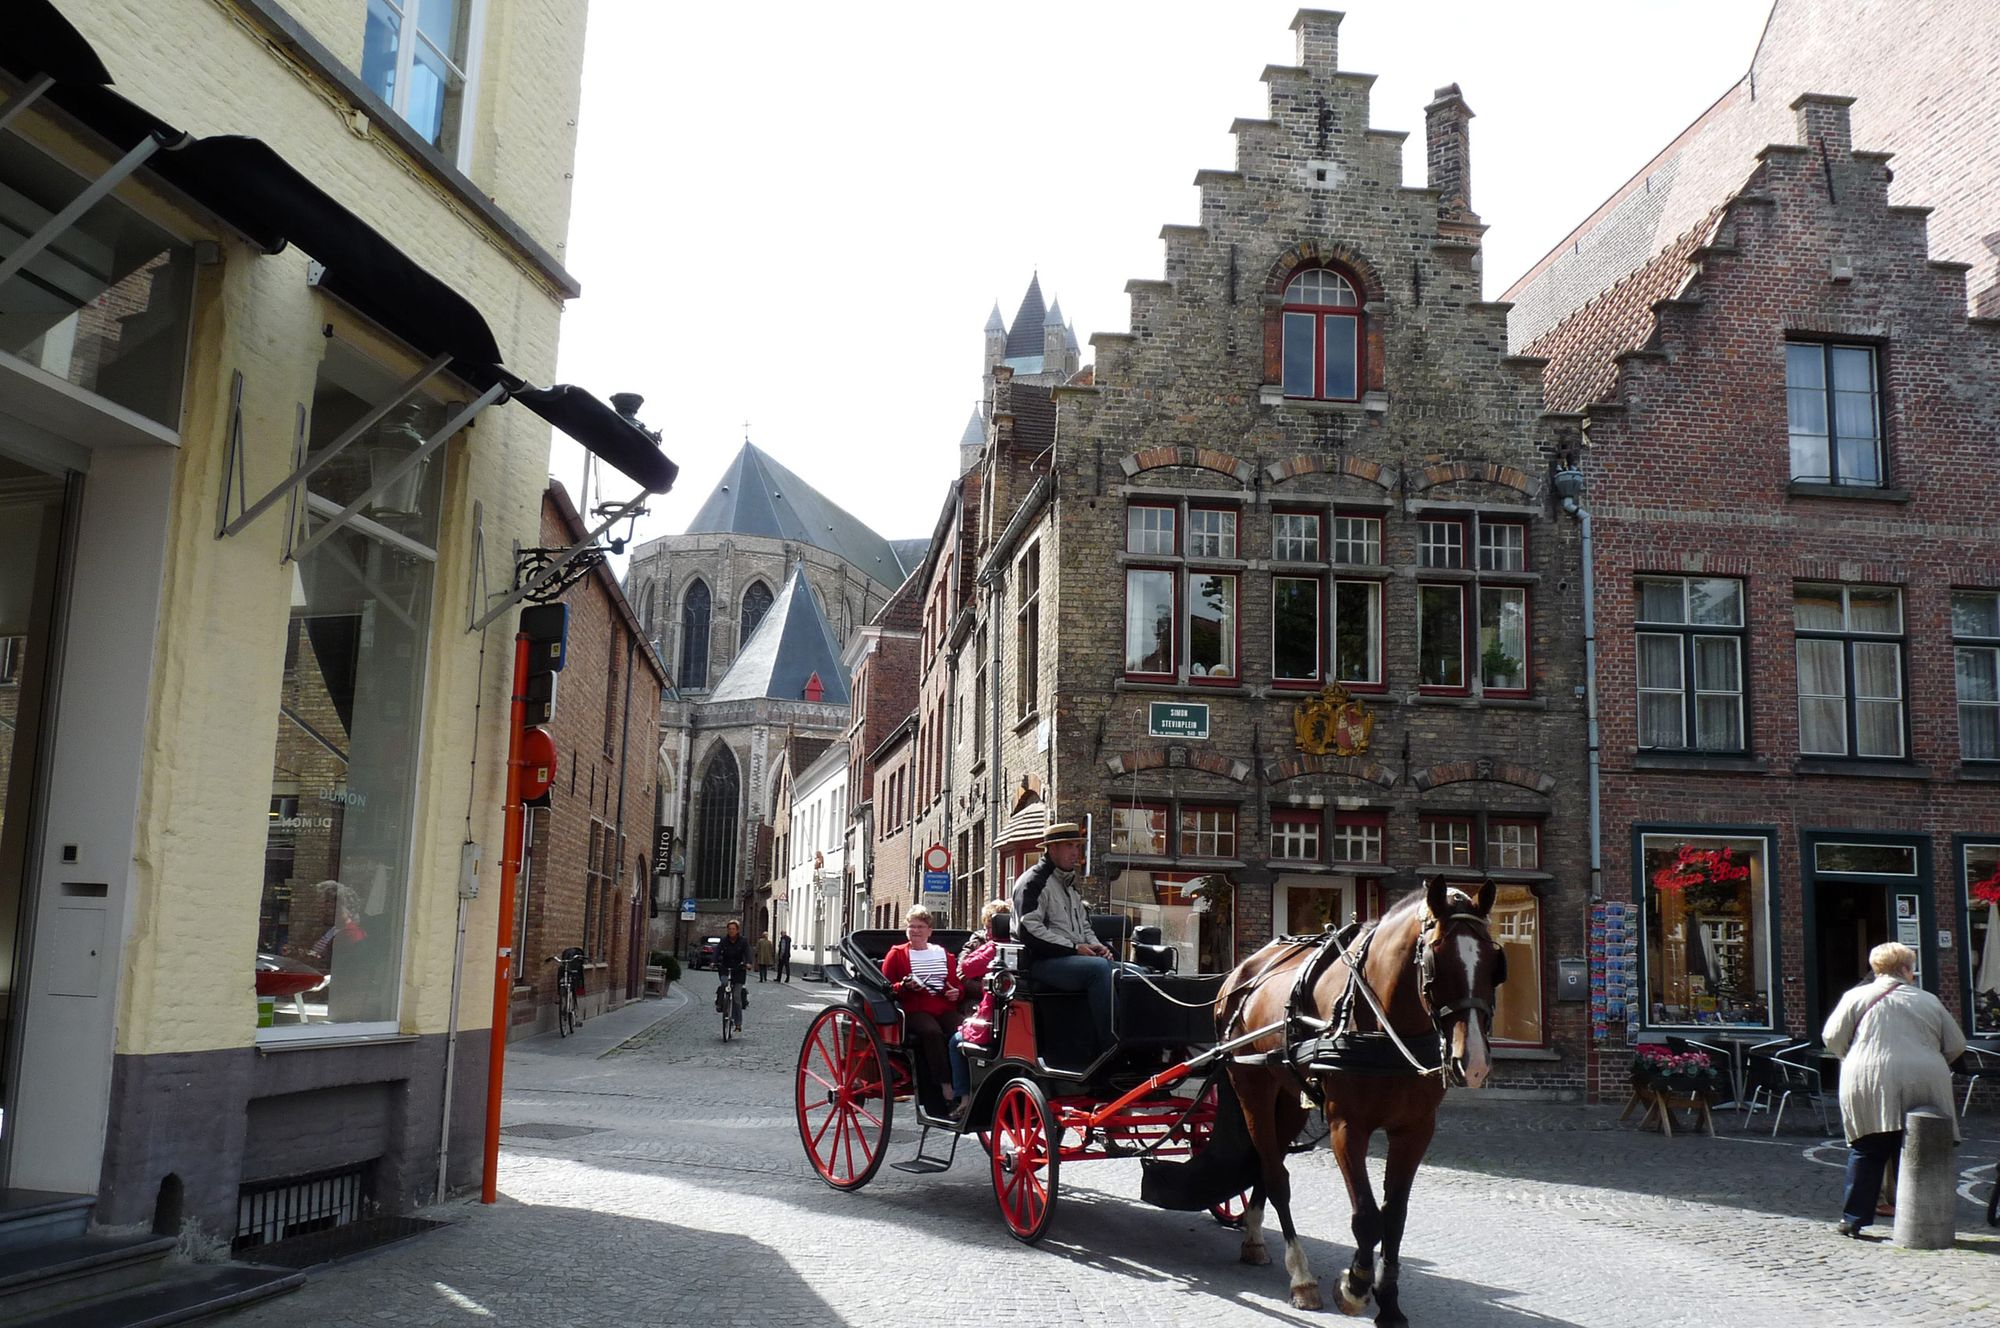 Is_a_Destination_Wedding_in_Your_Future_Brugges_Belgium_Carriage_Ride.jpg